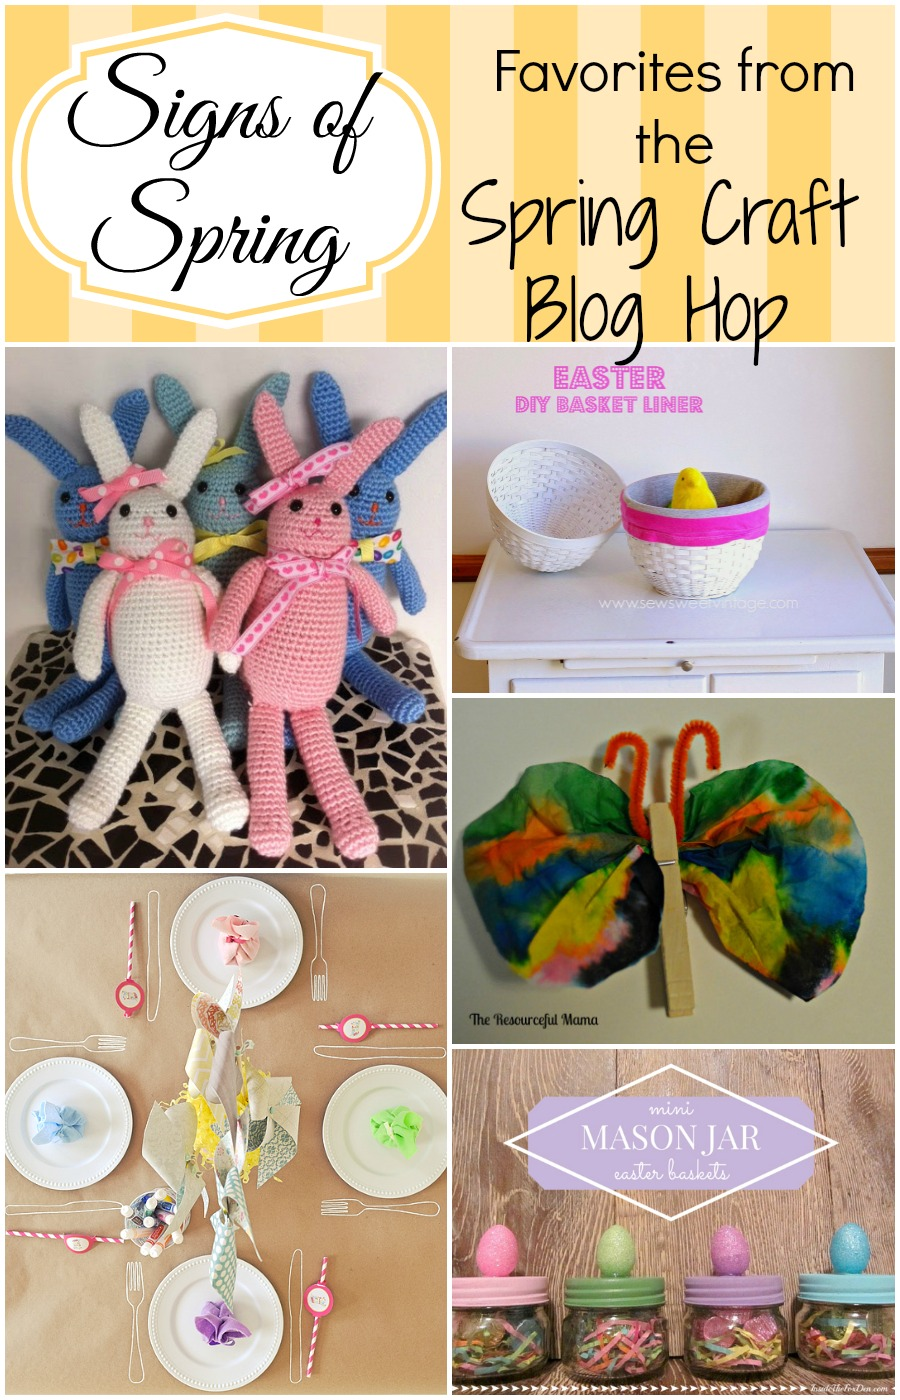 Favorites from the Spring Craft Blog Hop, week 3